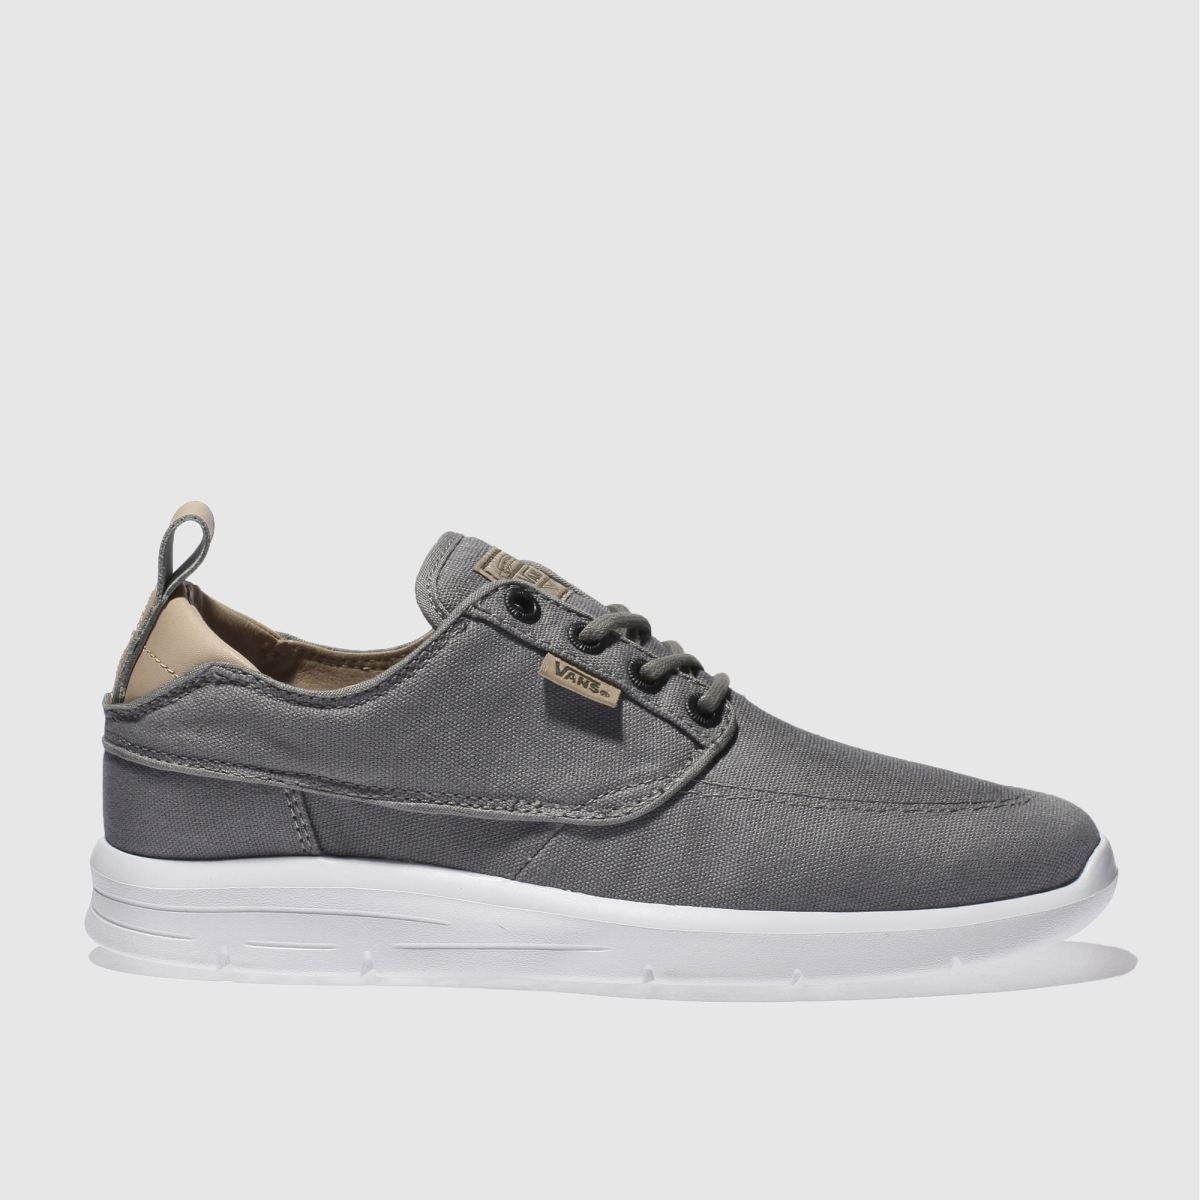 to buy 50% price ever popular vans grey brigata lite trainers Review